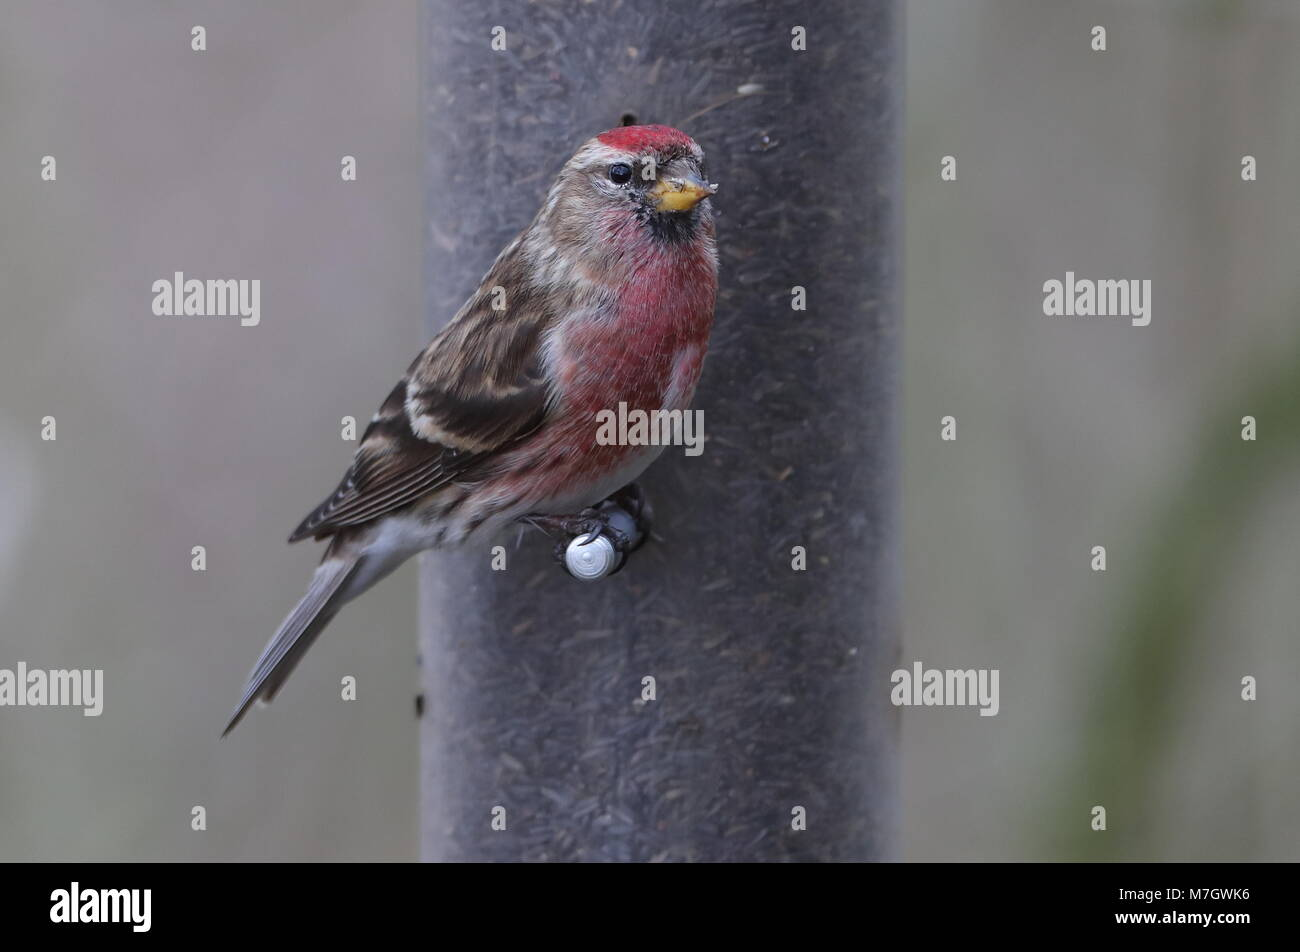 Adult male Lesser RedpollFinches - Stock Image